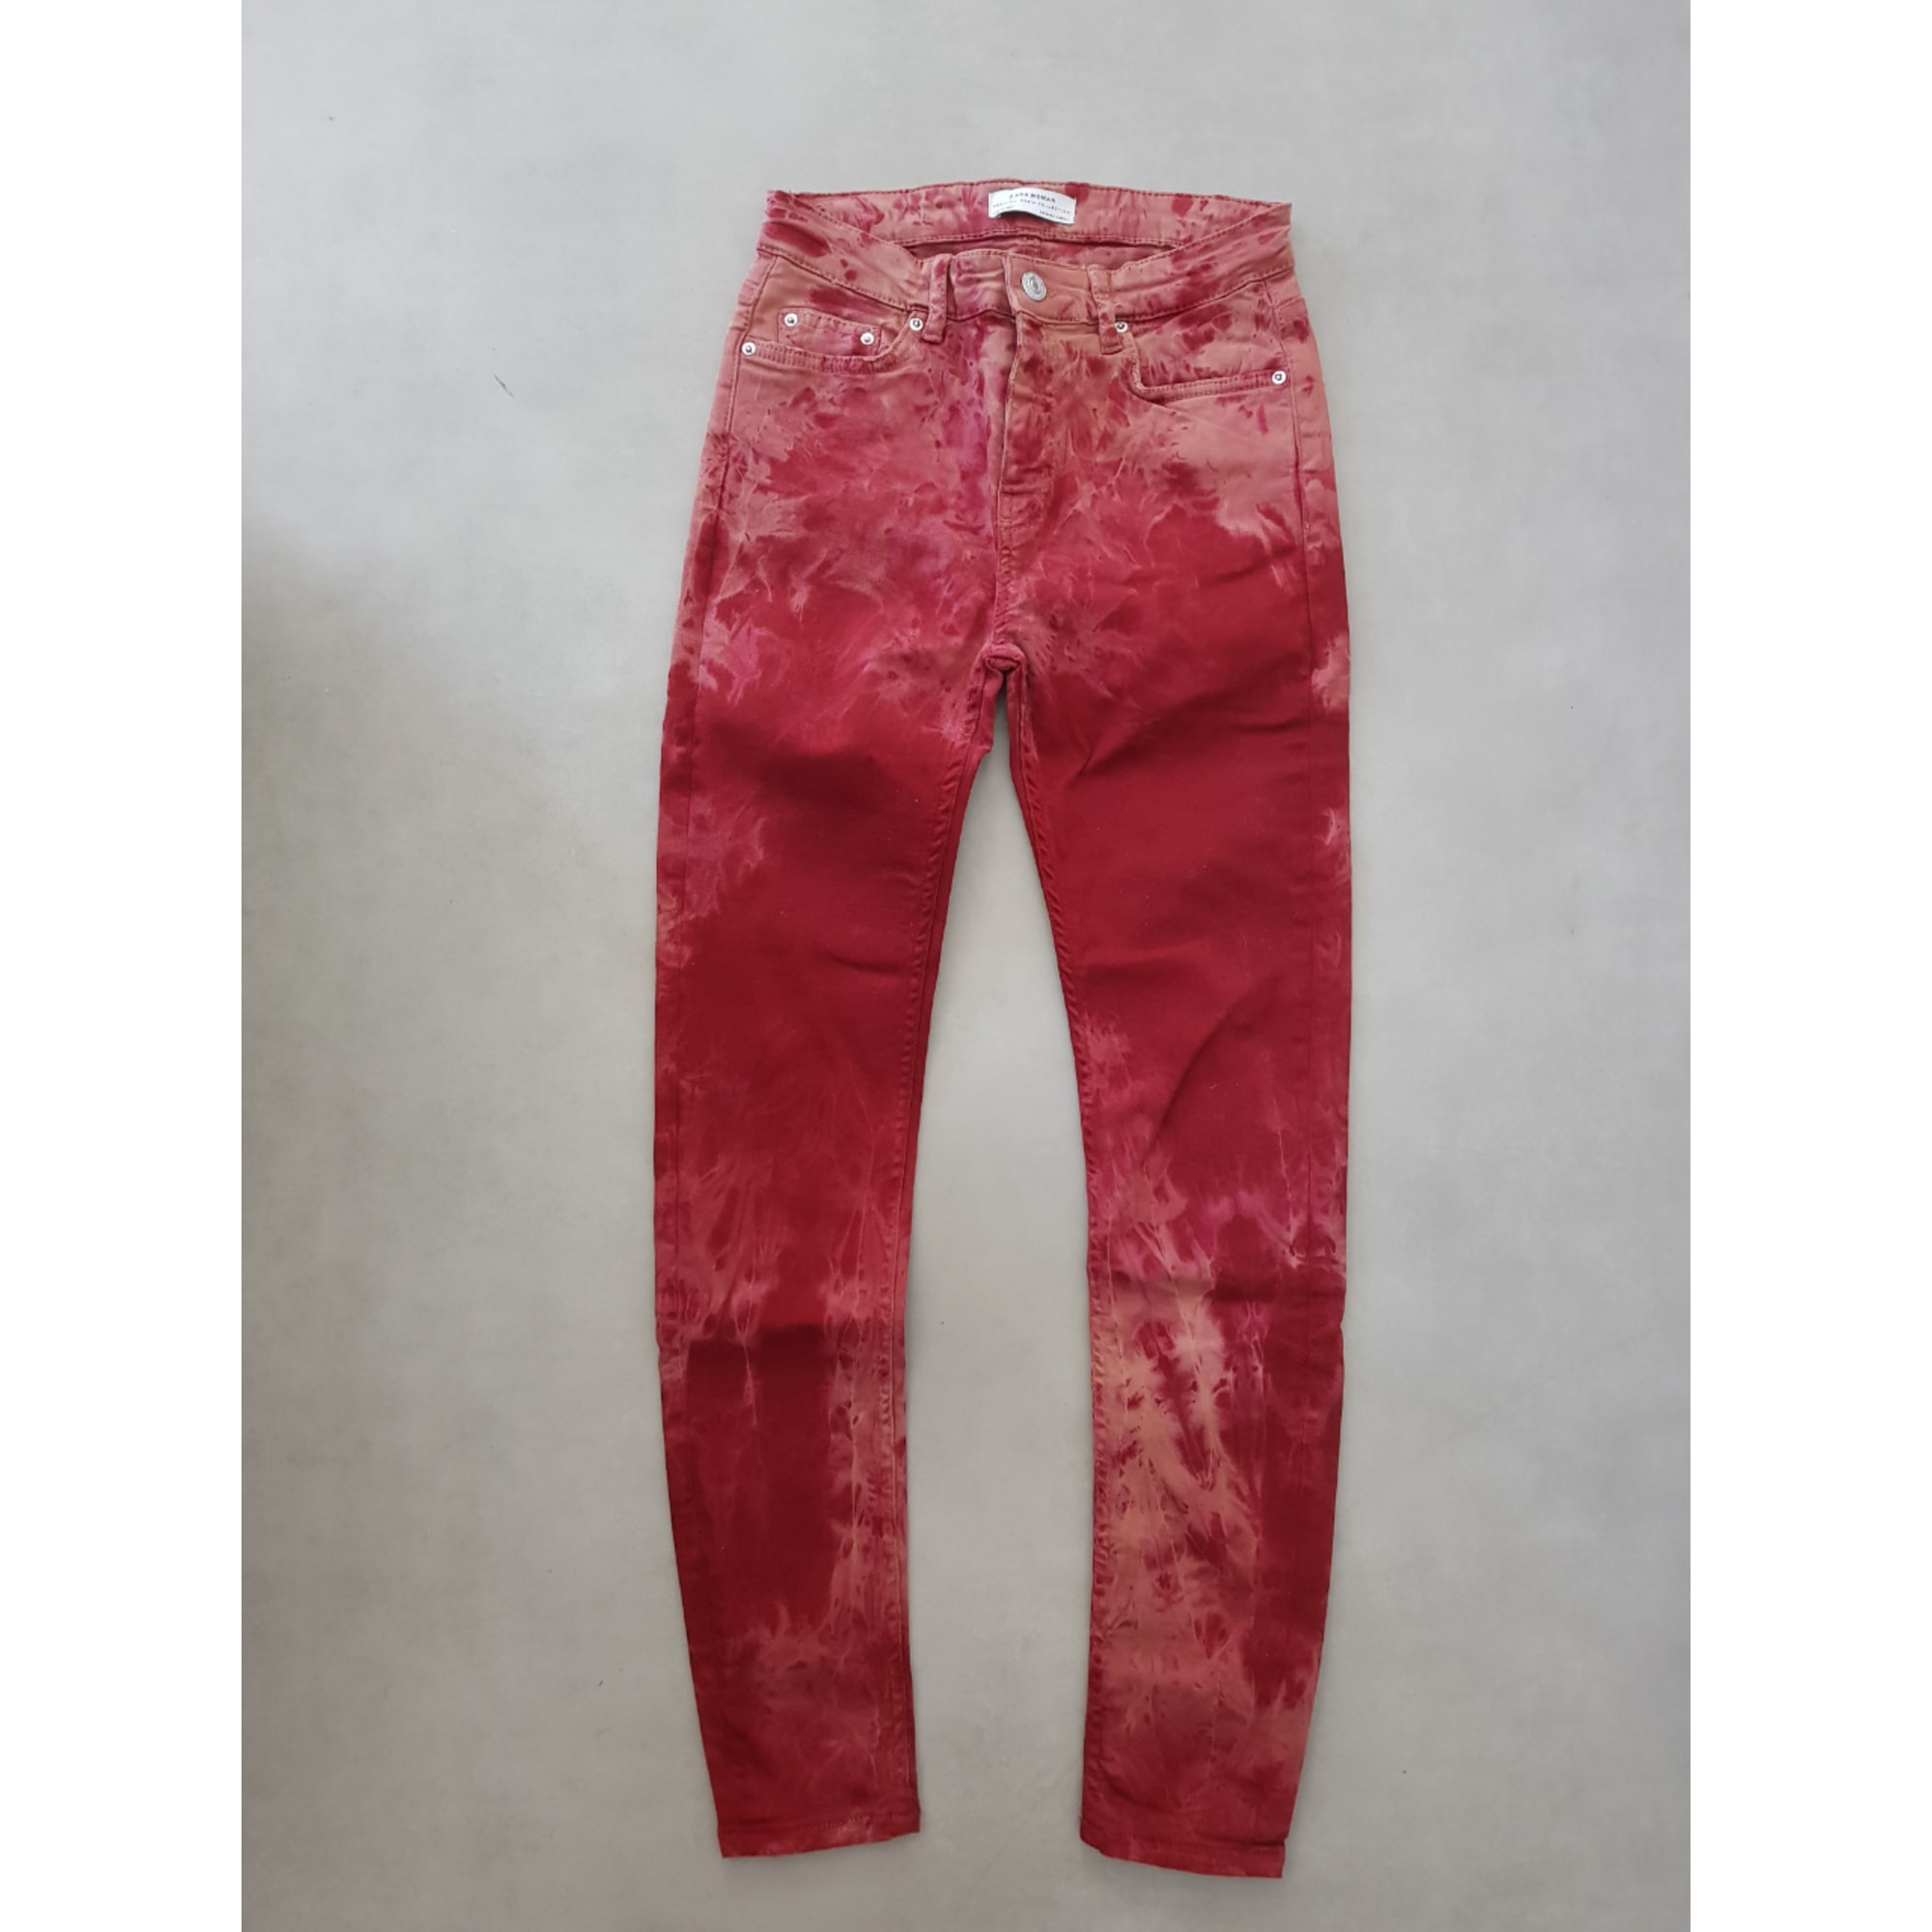 Jeans slim ZARA Rouge, bordeaux